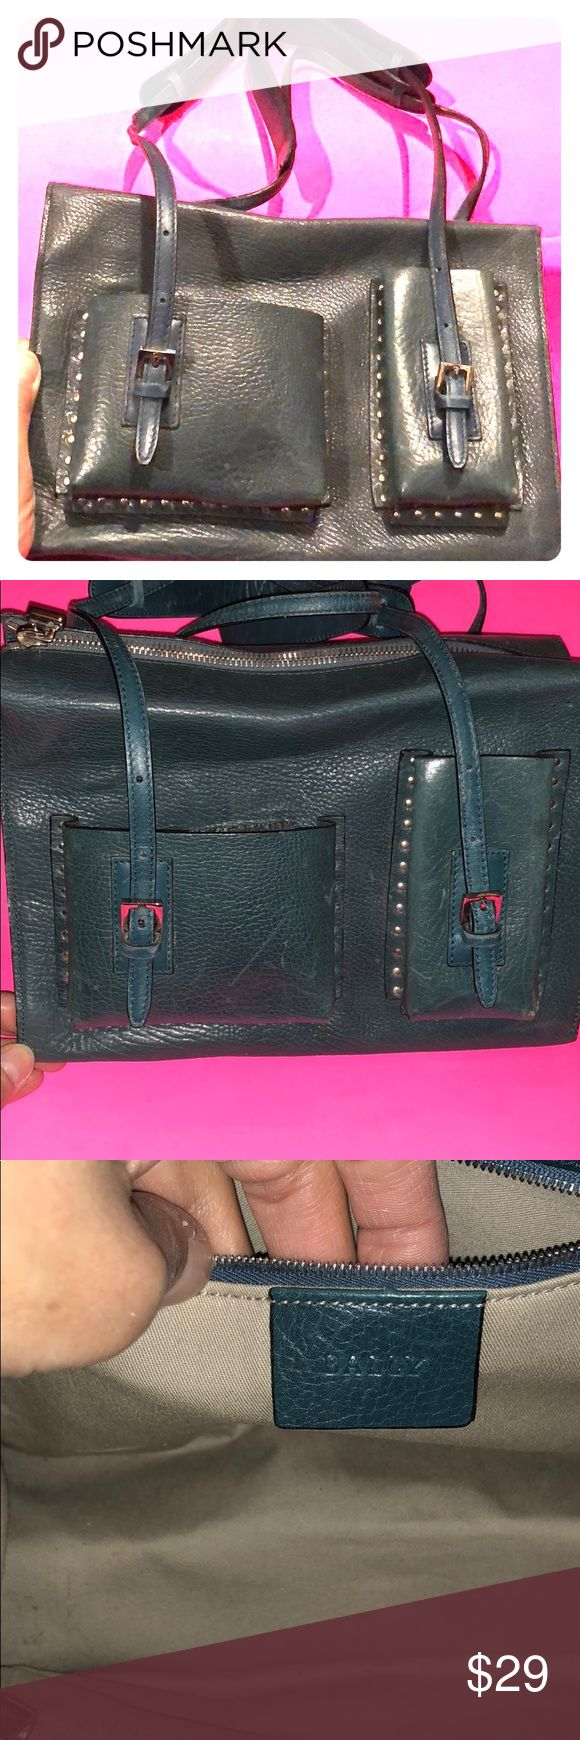 Bally Leather Dark Teal Shoulder Bag This Bally leather shoulder bag is from the expensive Bally Shoes and Bags company that make beautifully made bags from Italy. This bag is not just a small bag, it's more of a medium size with a lovely dark teal color. It was used but is in good condition. It is definitely unique and very luxurious to own. Also, it looks smallish when closed and on your shoulder but when you open it, it fits belongings like a medium sized bag. Ingenious! Bally Bags…